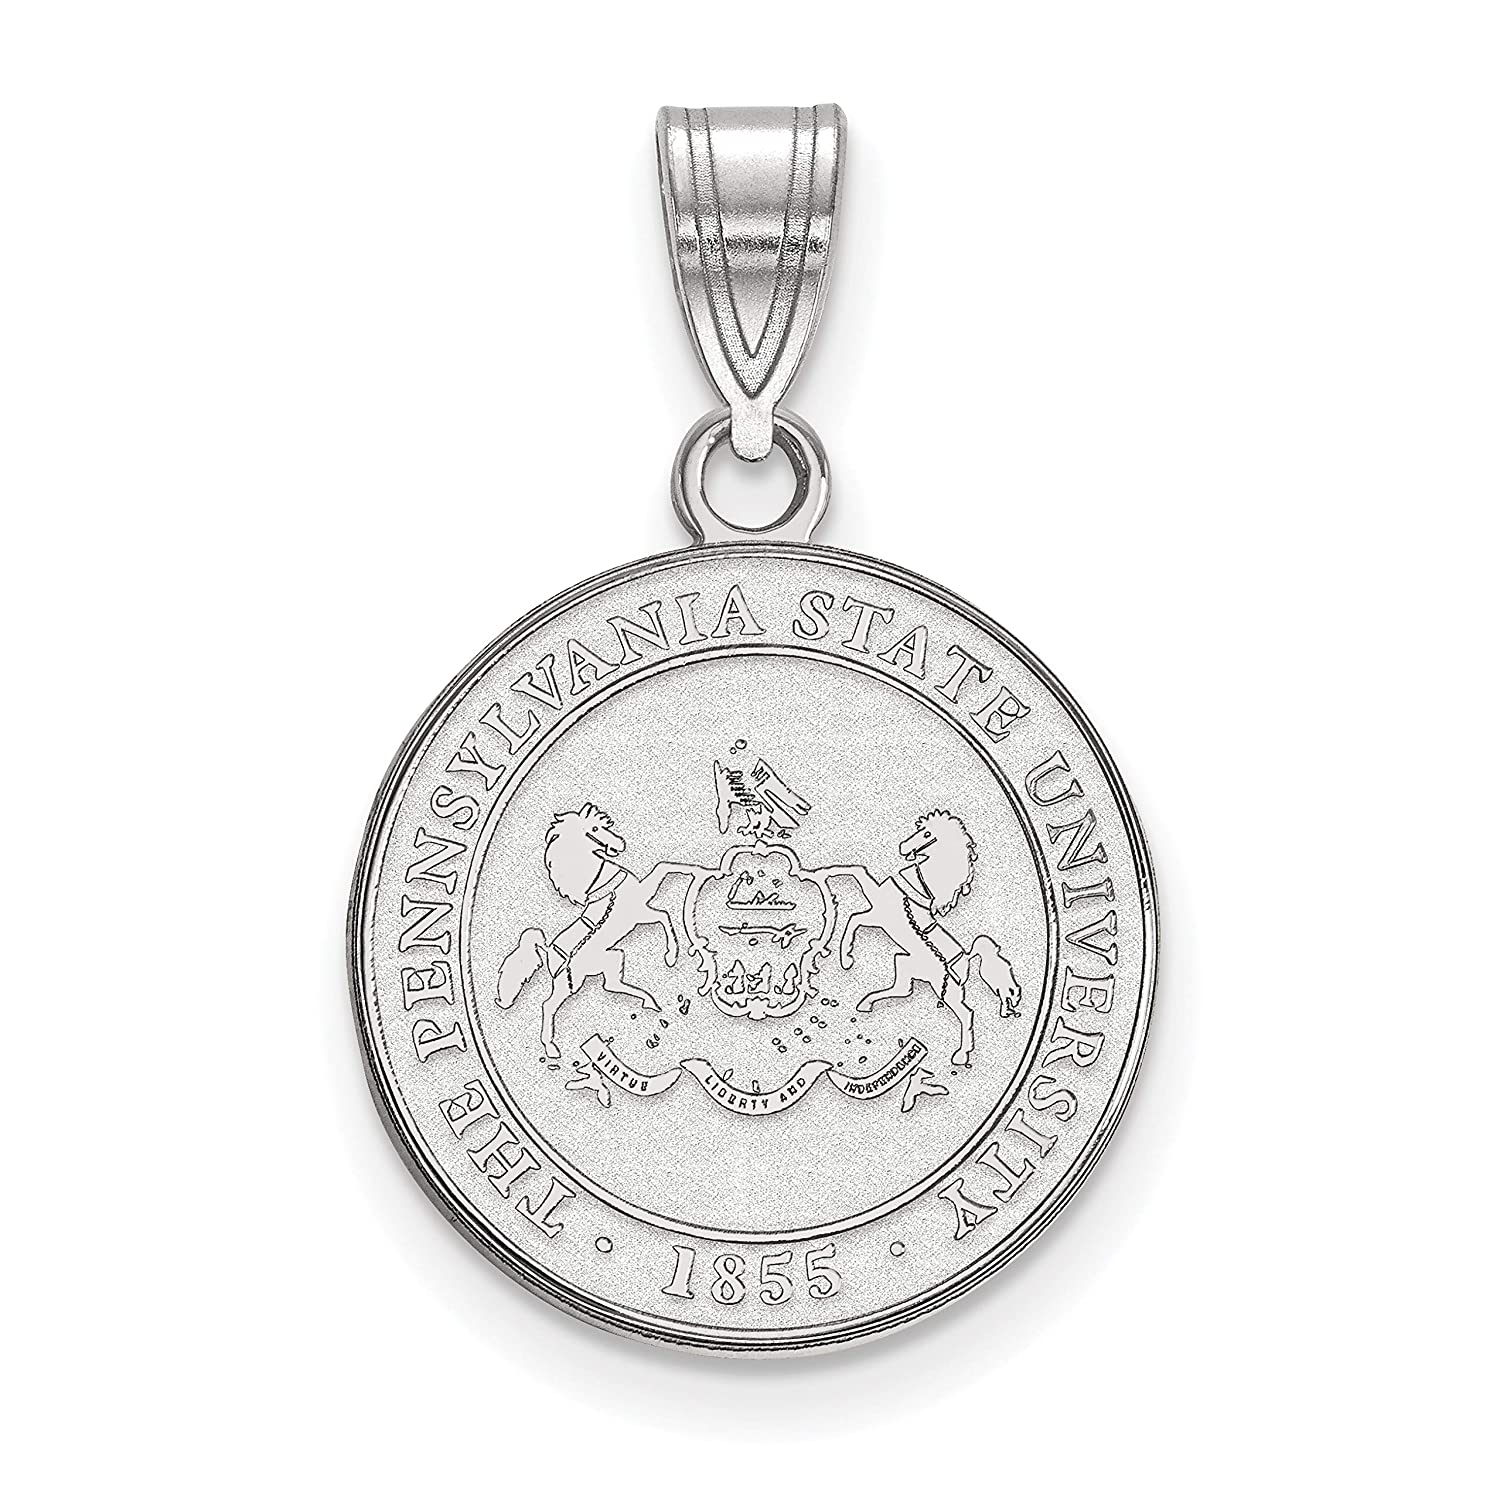 Penn State University Nittany Lions School Crest Pendant in Sterling Silver 16x15mm